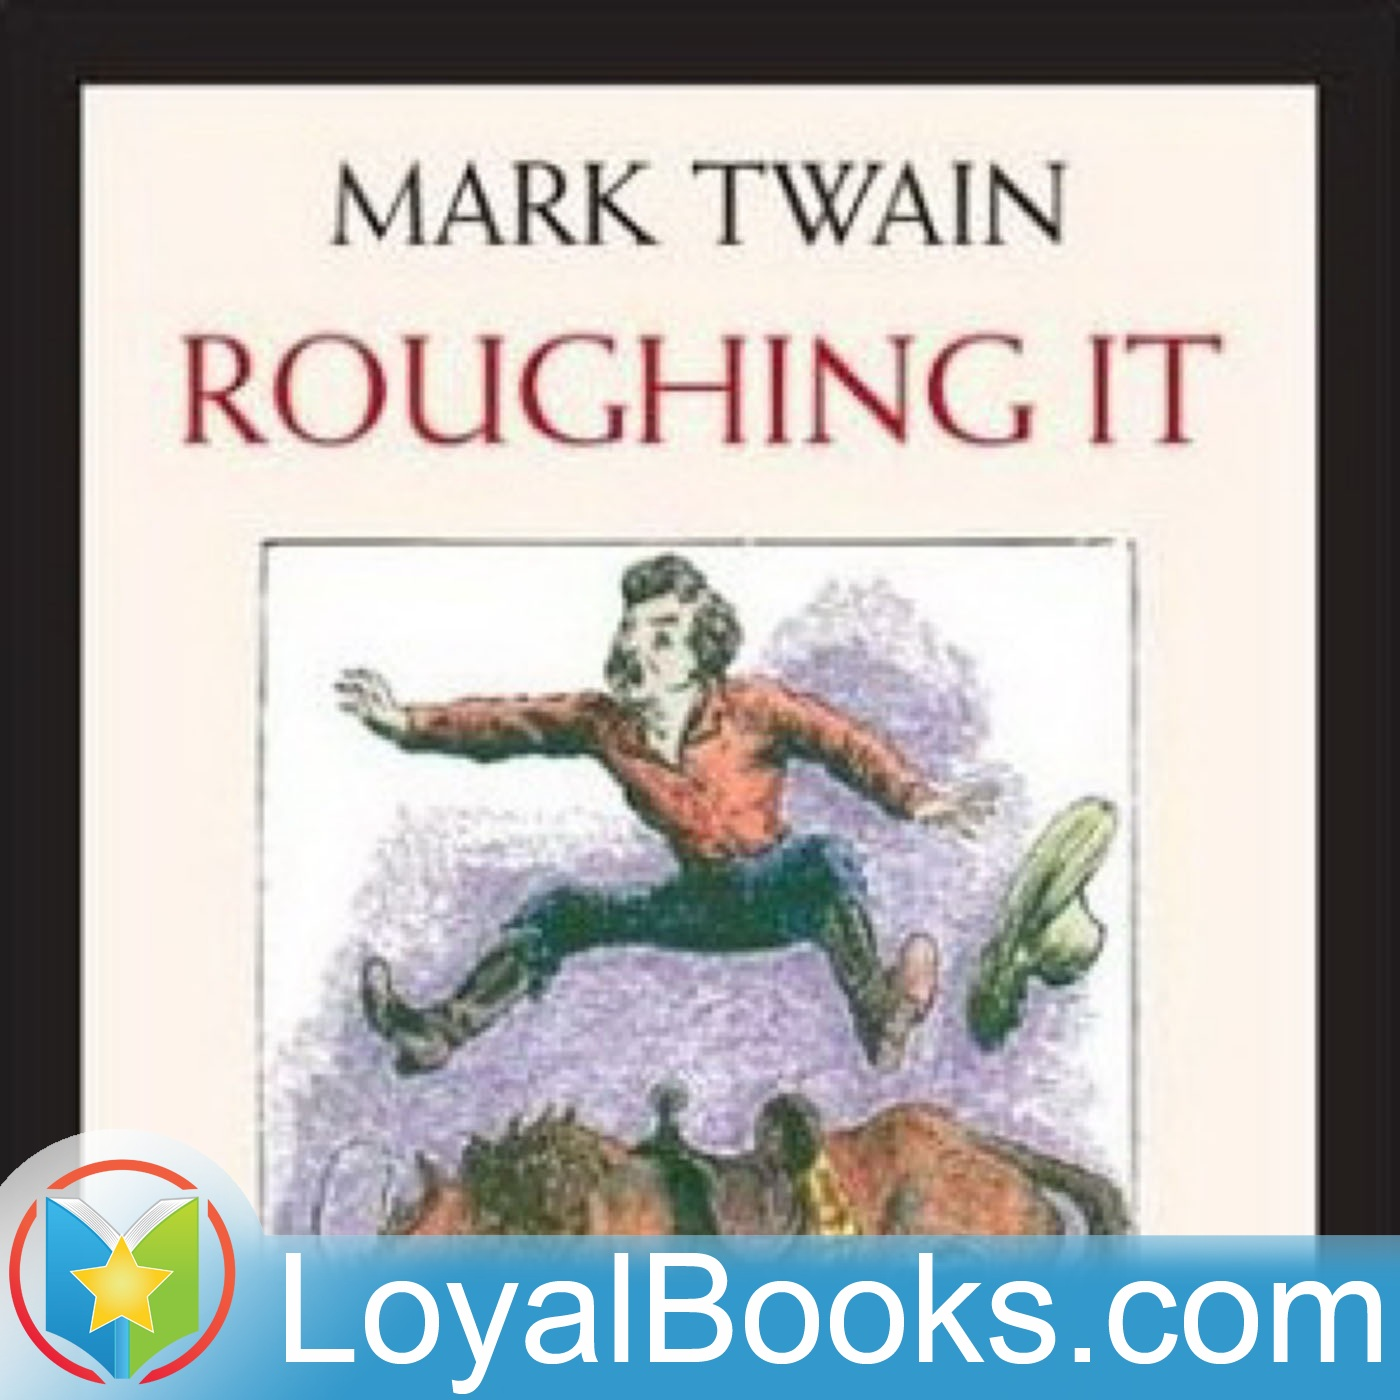 <![CDATA[Roughing It by Mark Twain]]>